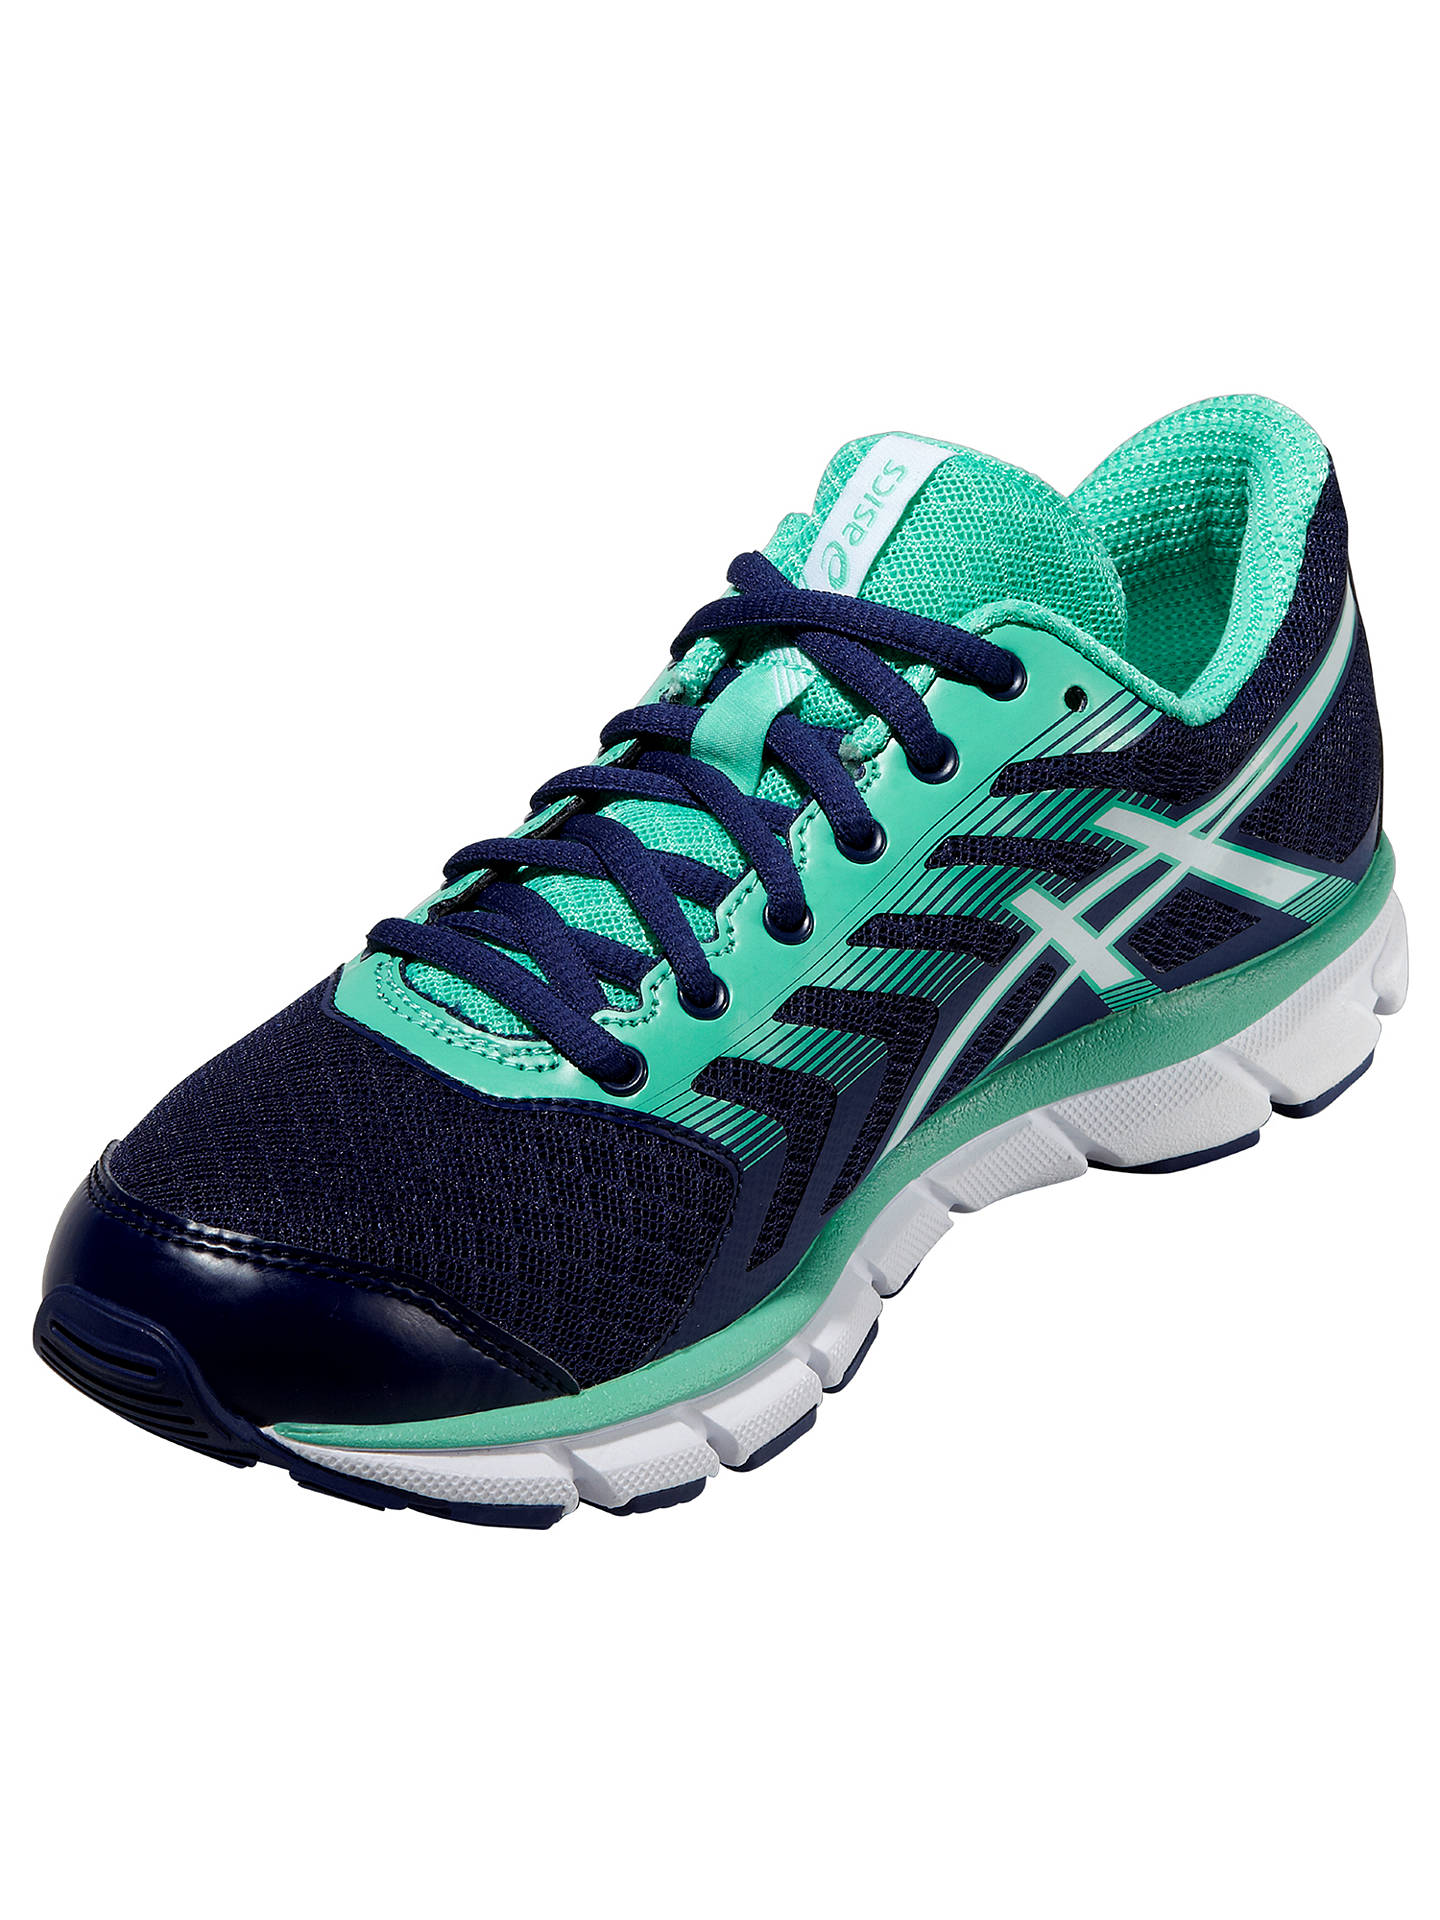 Asics Gel Xalion 3 Women's Natural Running Shoes, Indigo at